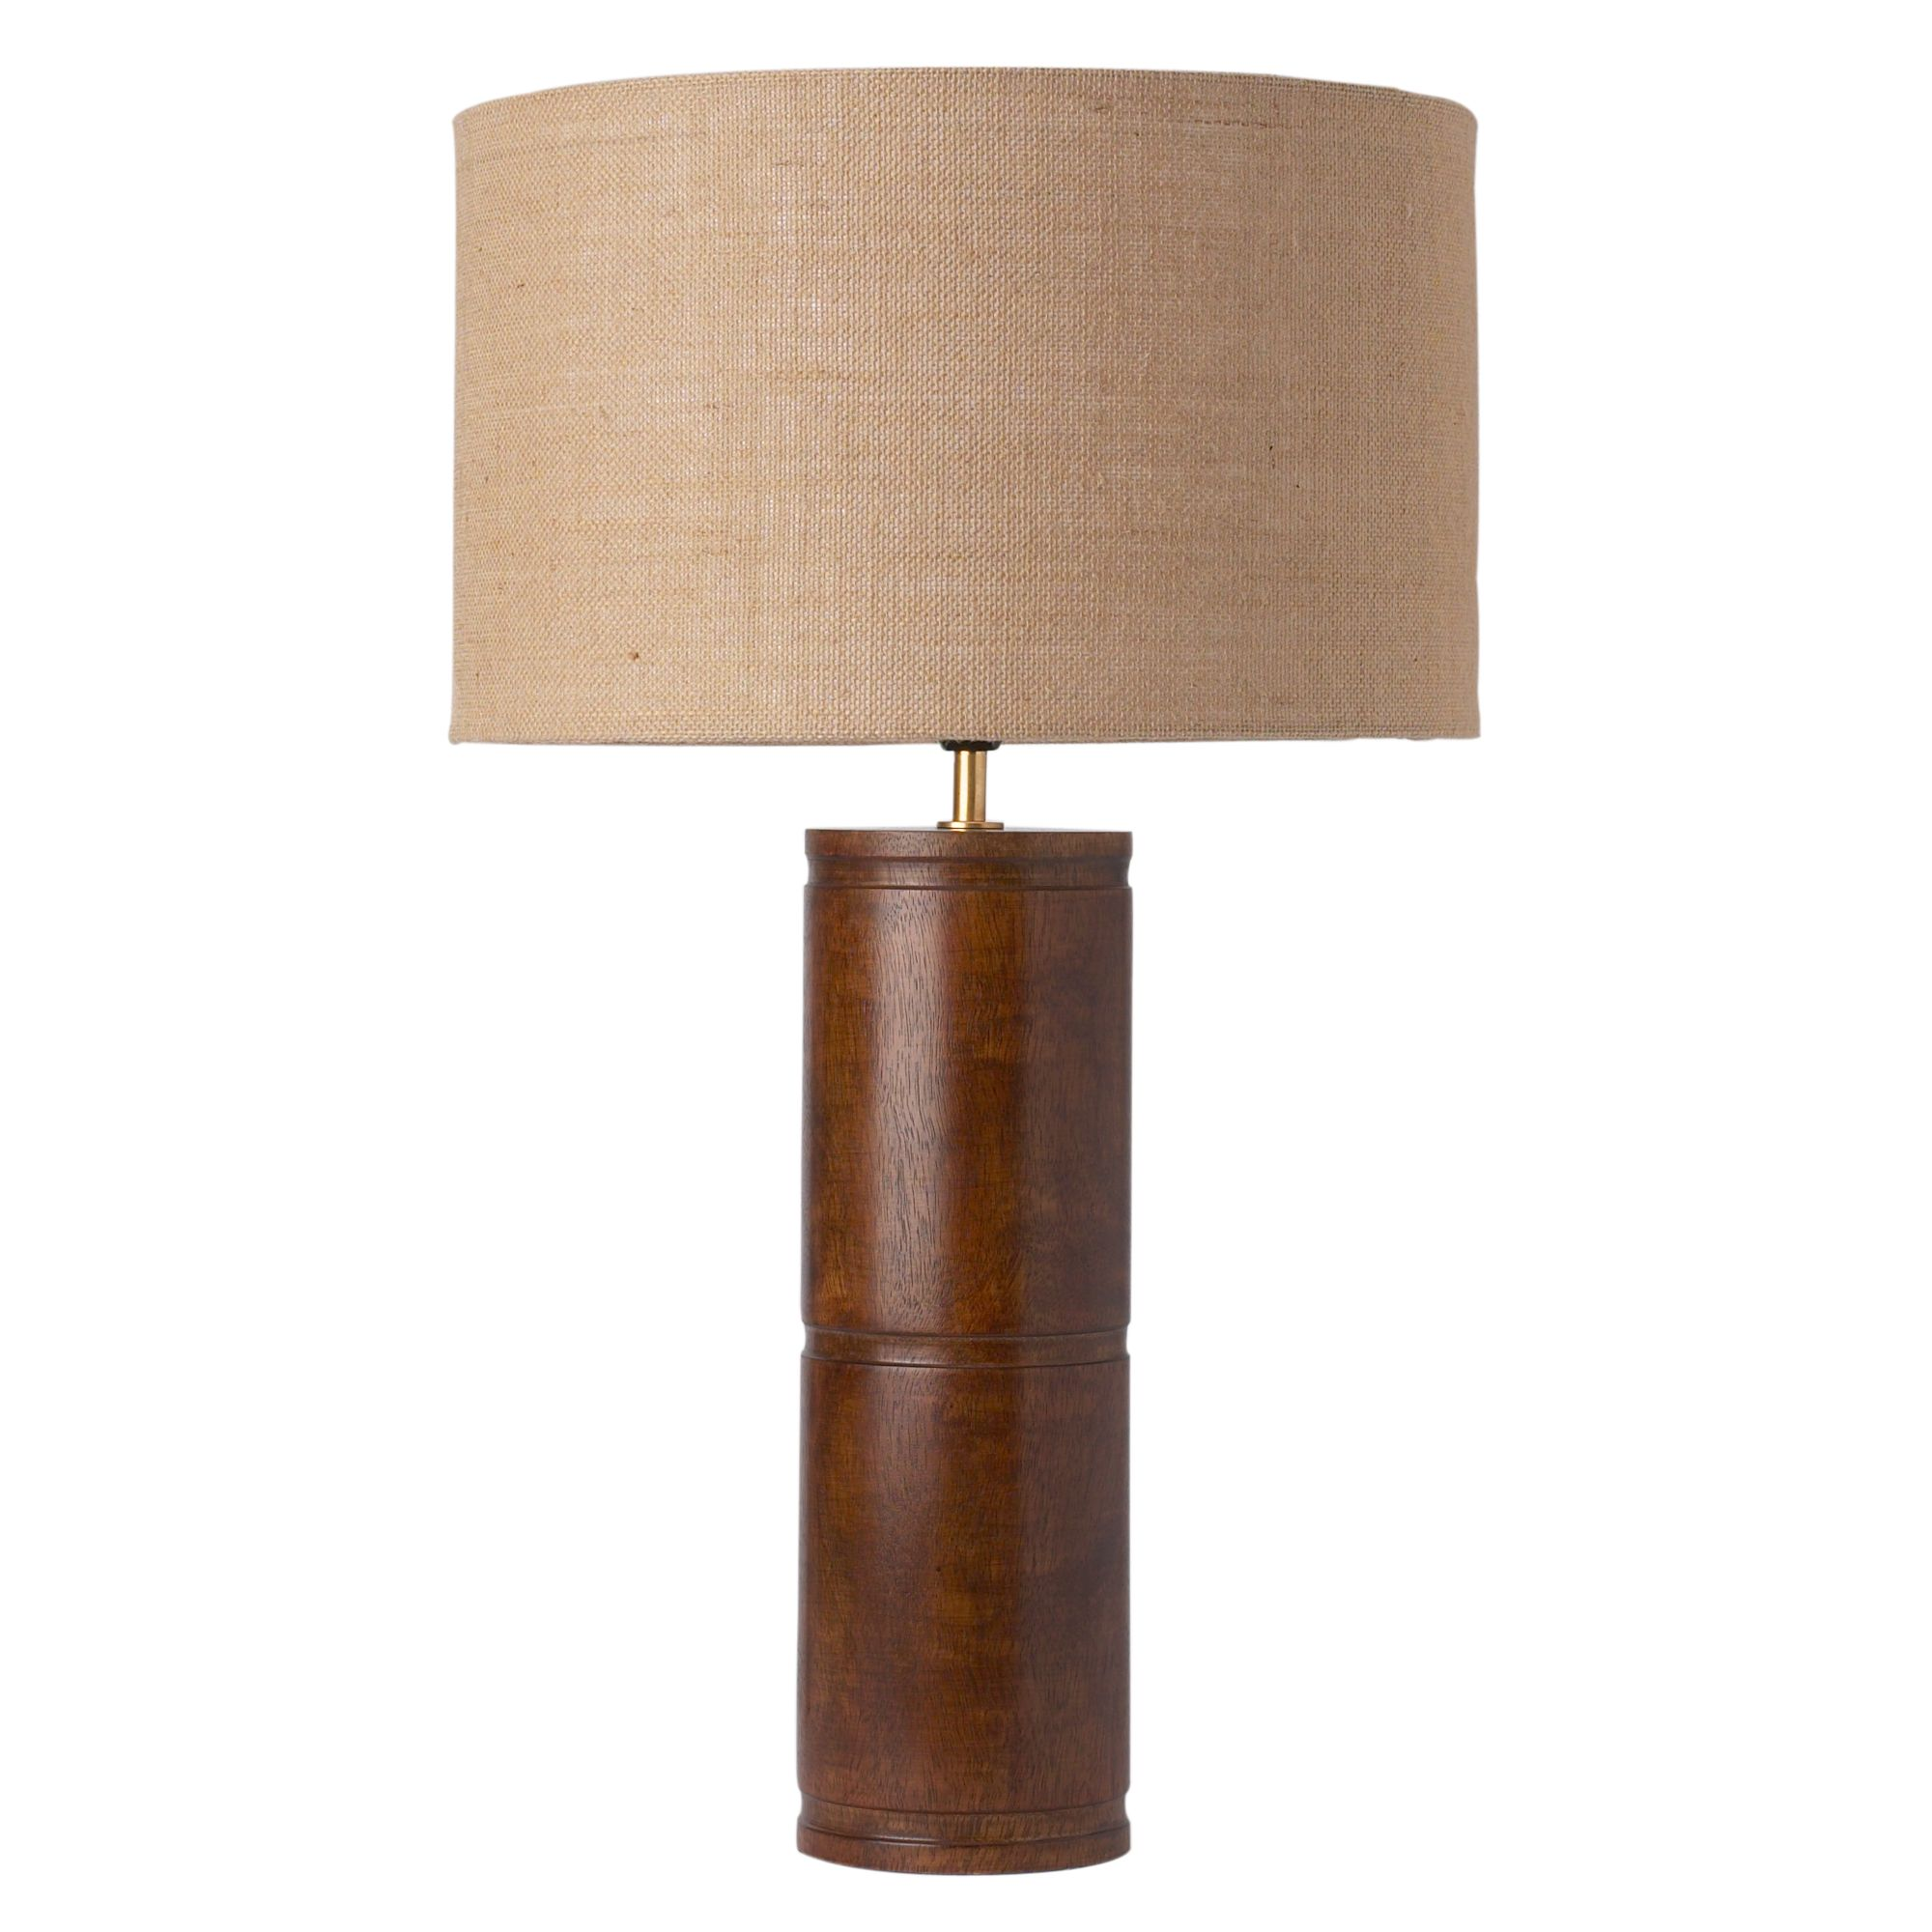 Linea Mat table lamp